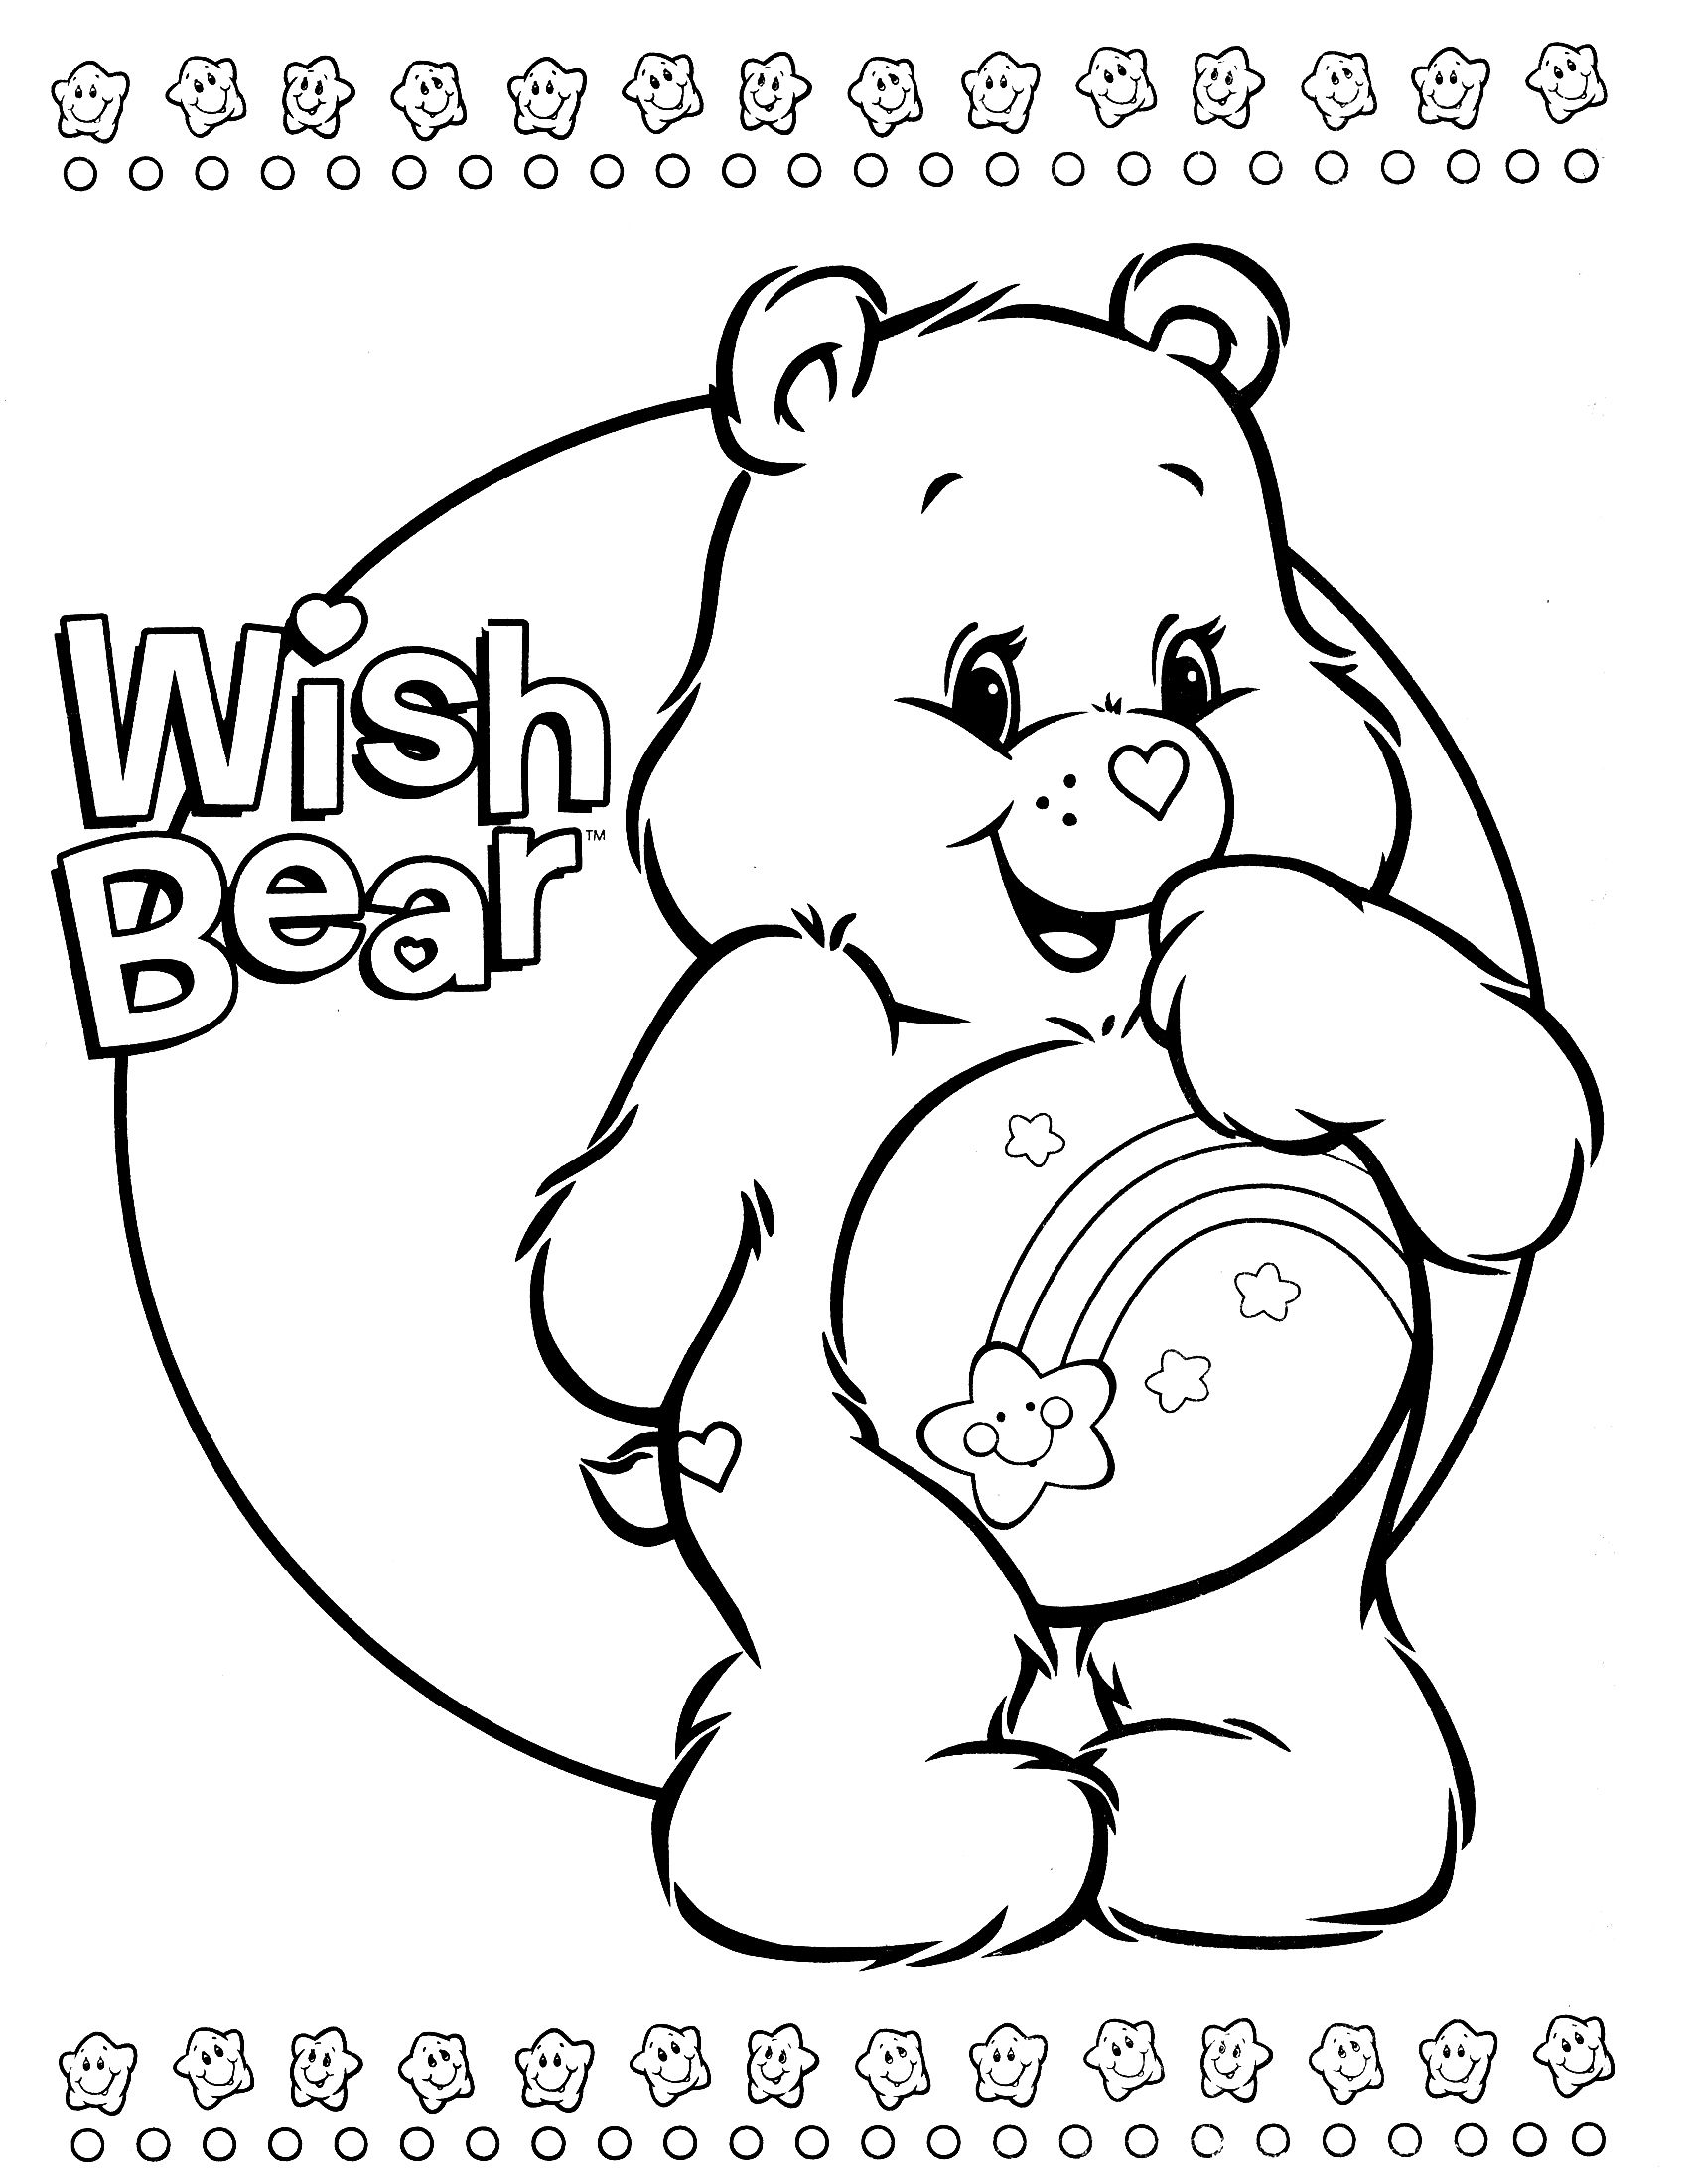 Book care coloring sheet - Care bears coloring page tagged with care bear coloring pages 2